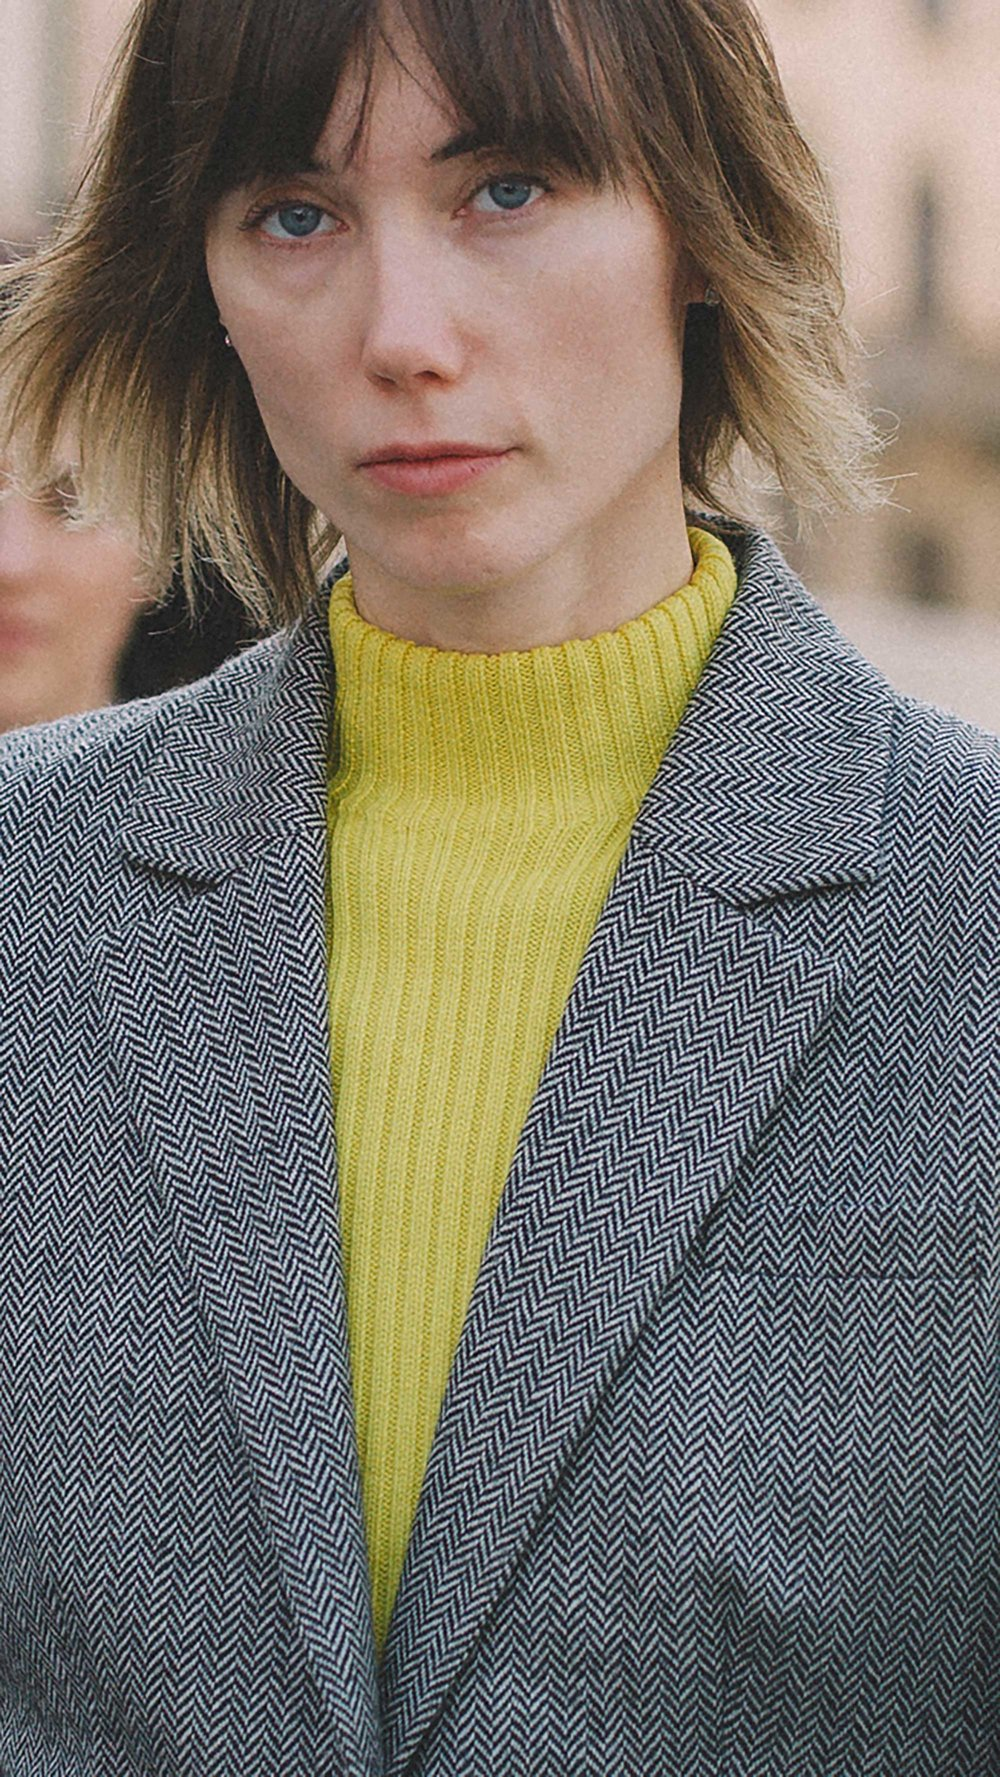 est outfits of Milan Fashion Week street style day two MFW FW19 53.jpg